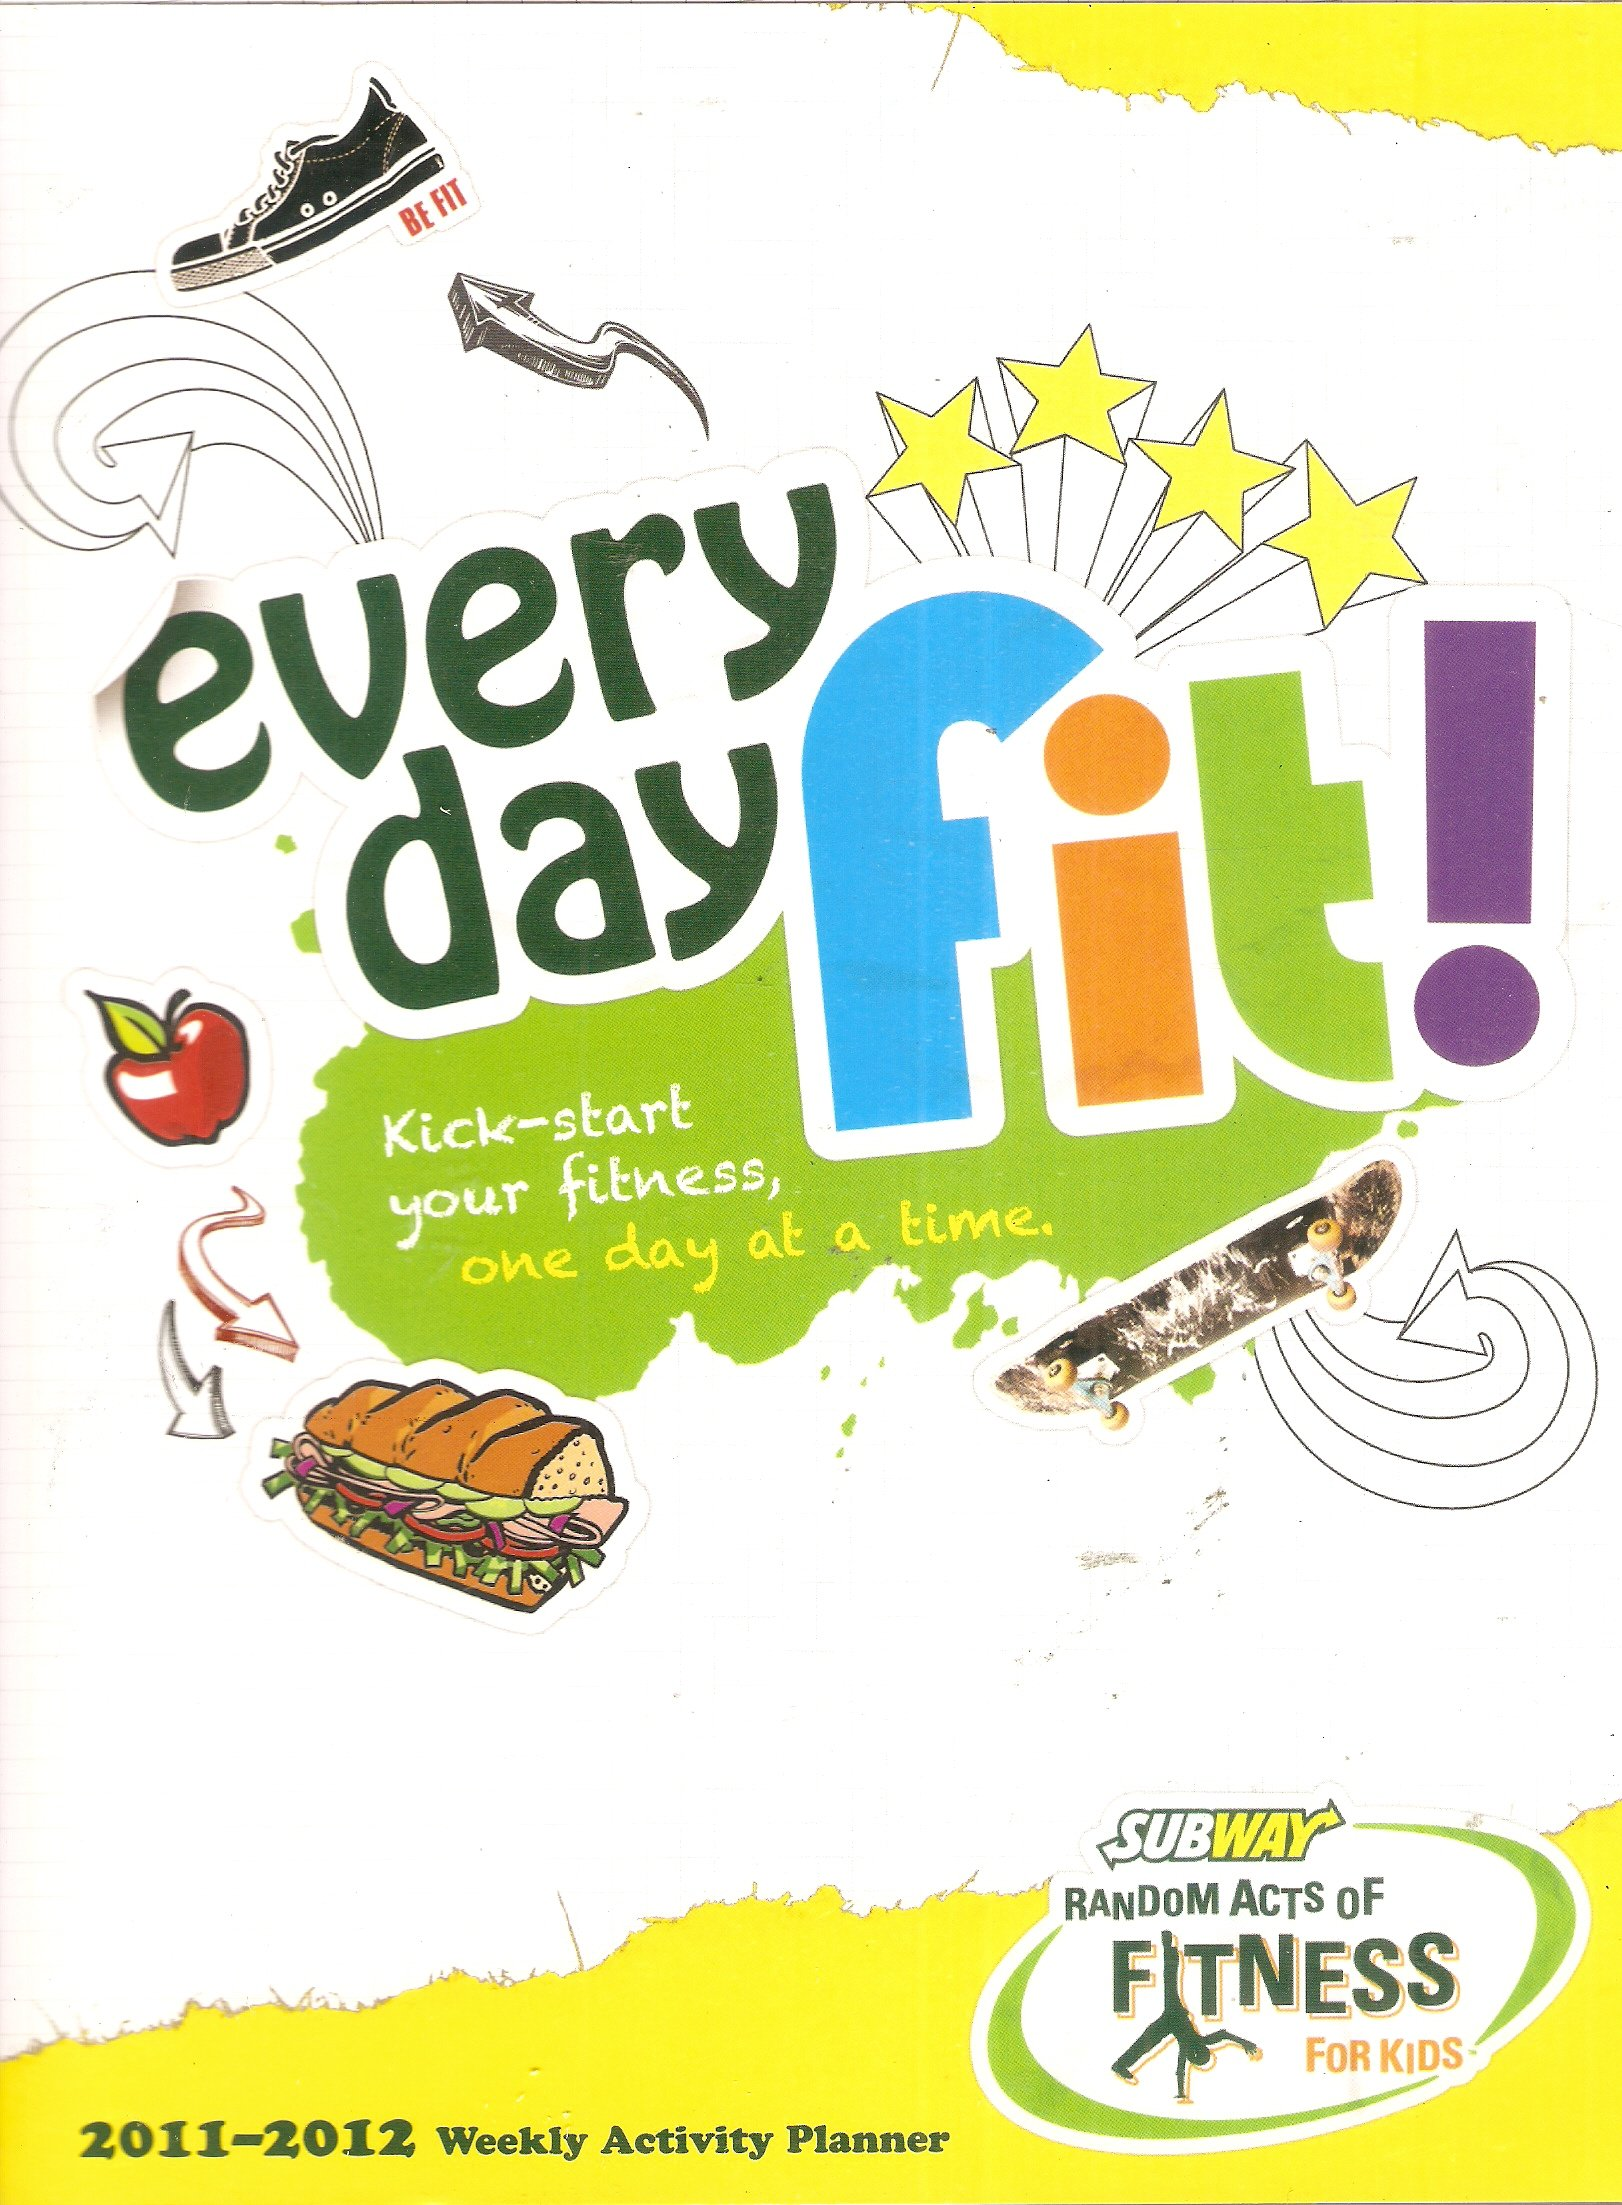 Download Every Day Fit!: Kick Start Your Fitness, One Day At a Time: 2011-2012 Weekly Activity Planner: Subway Random Acts of Fitness For Kids pdf